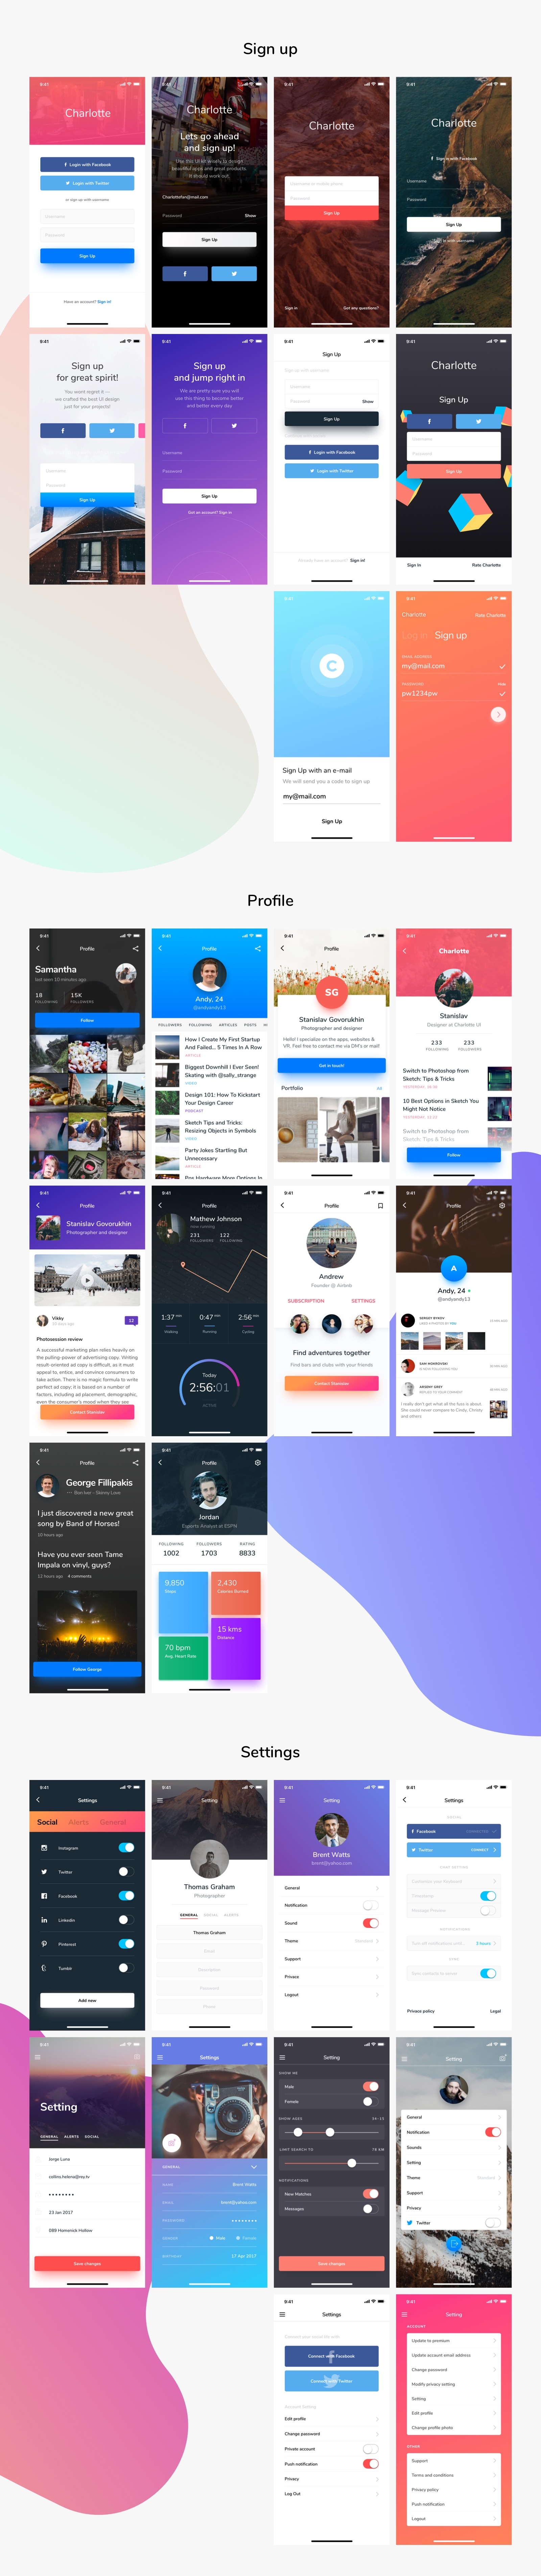 Charlotte iOS UI Kit in UX & UI Kits on Yellow Images Creative Store